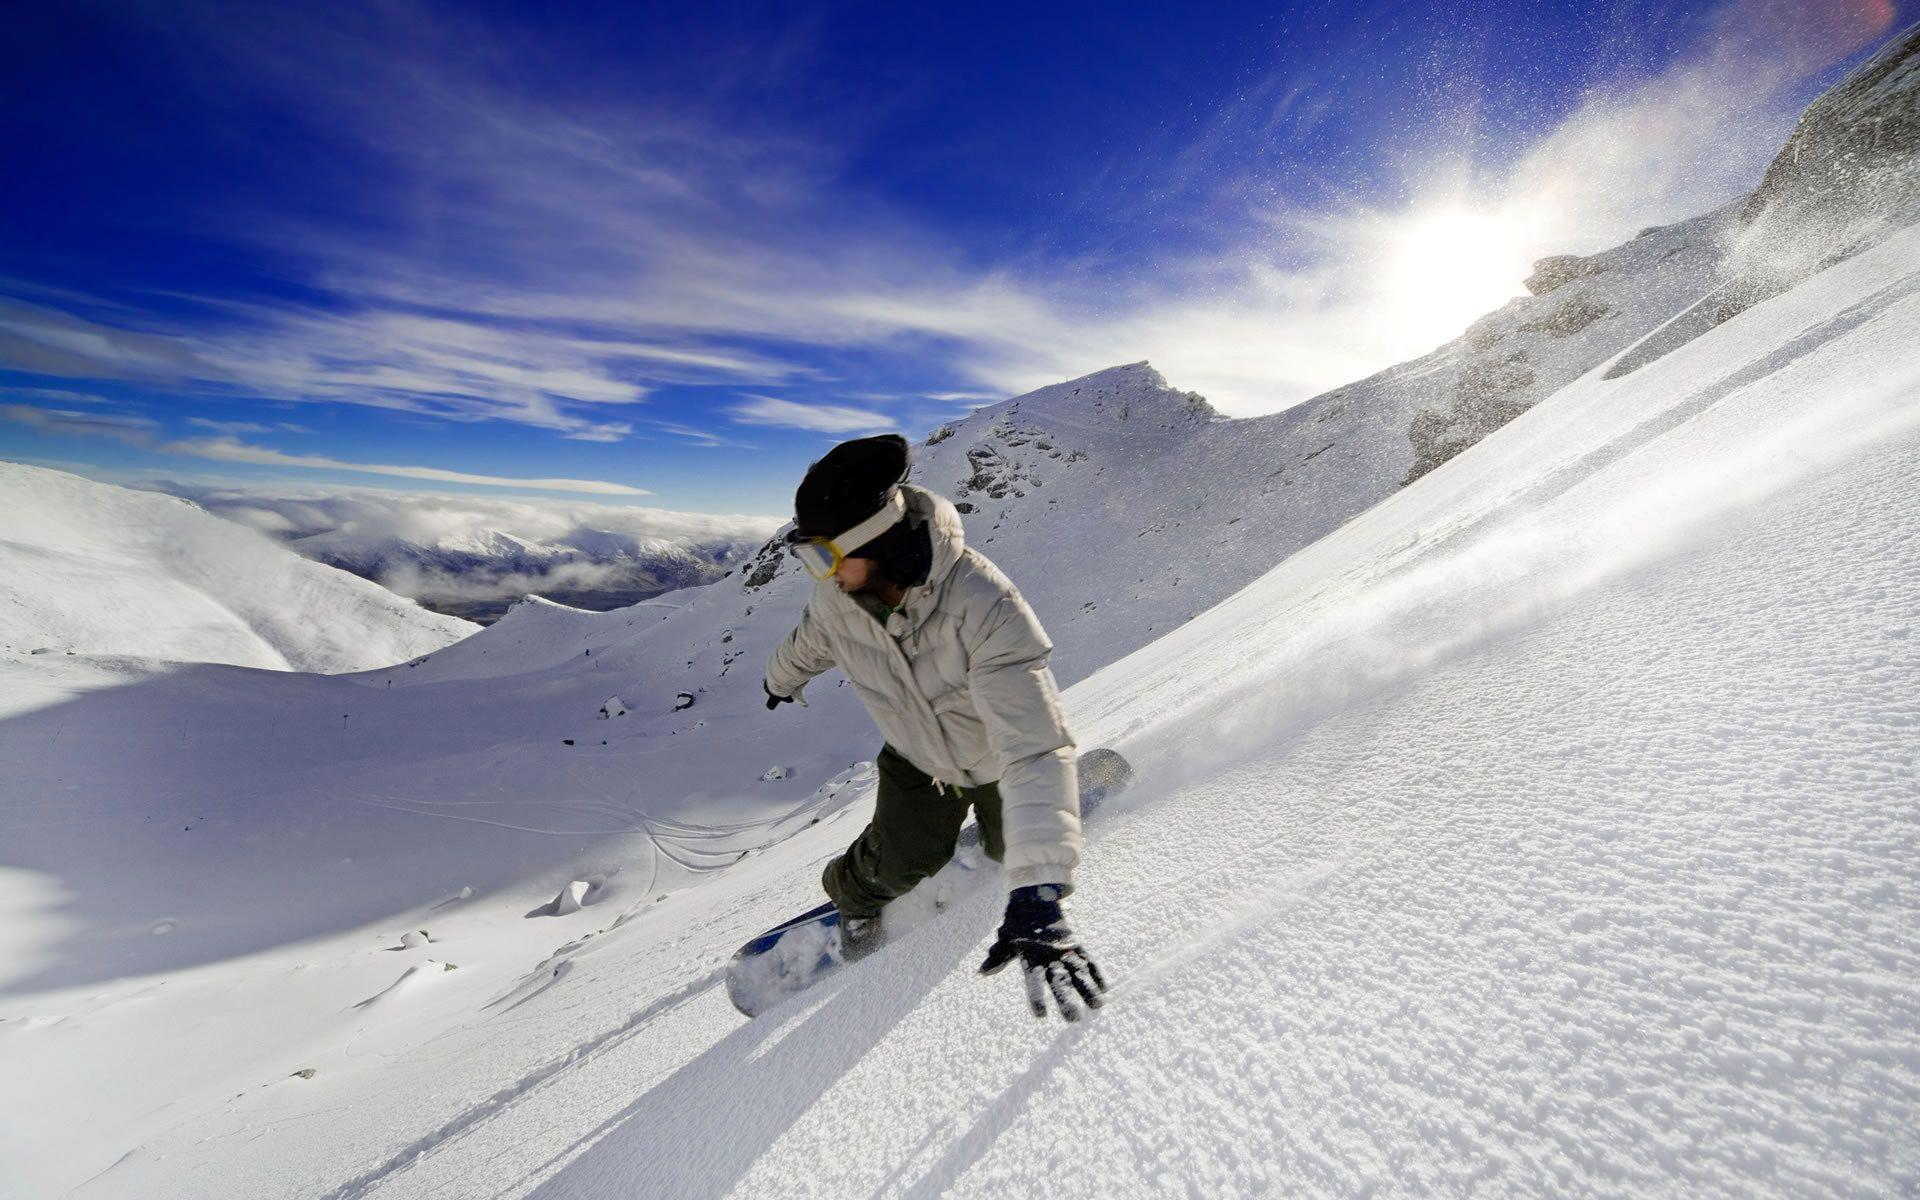 snowboard outdoor wallpaper desktop - photo #4